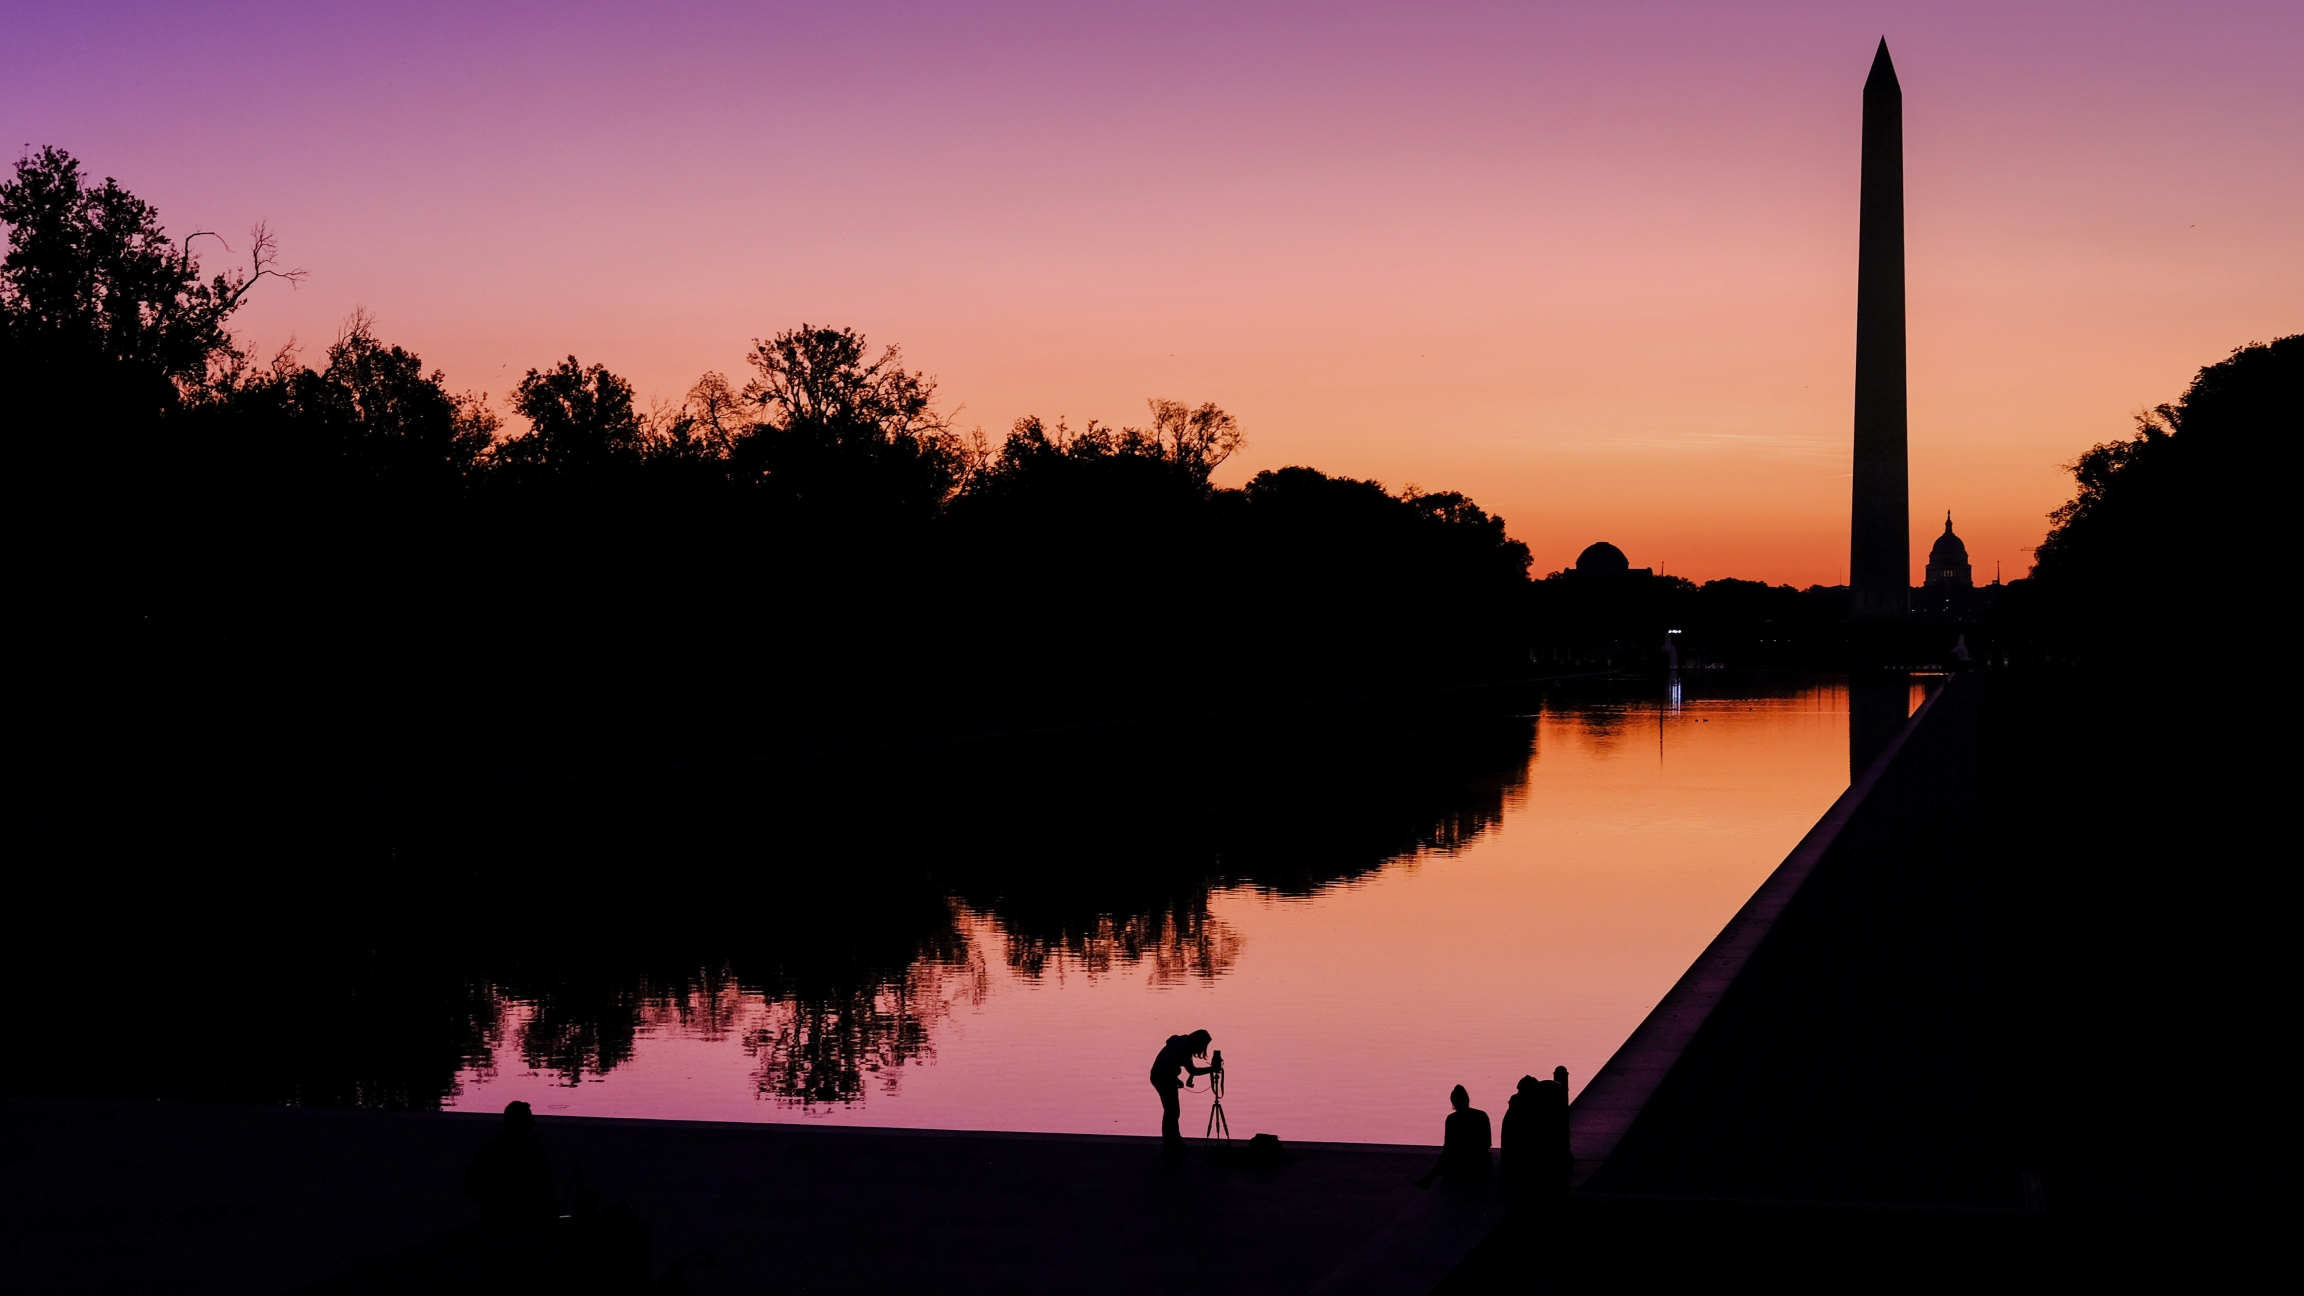 A pink and orange sunset along the National Mall in Washington DC with silhouetted trees